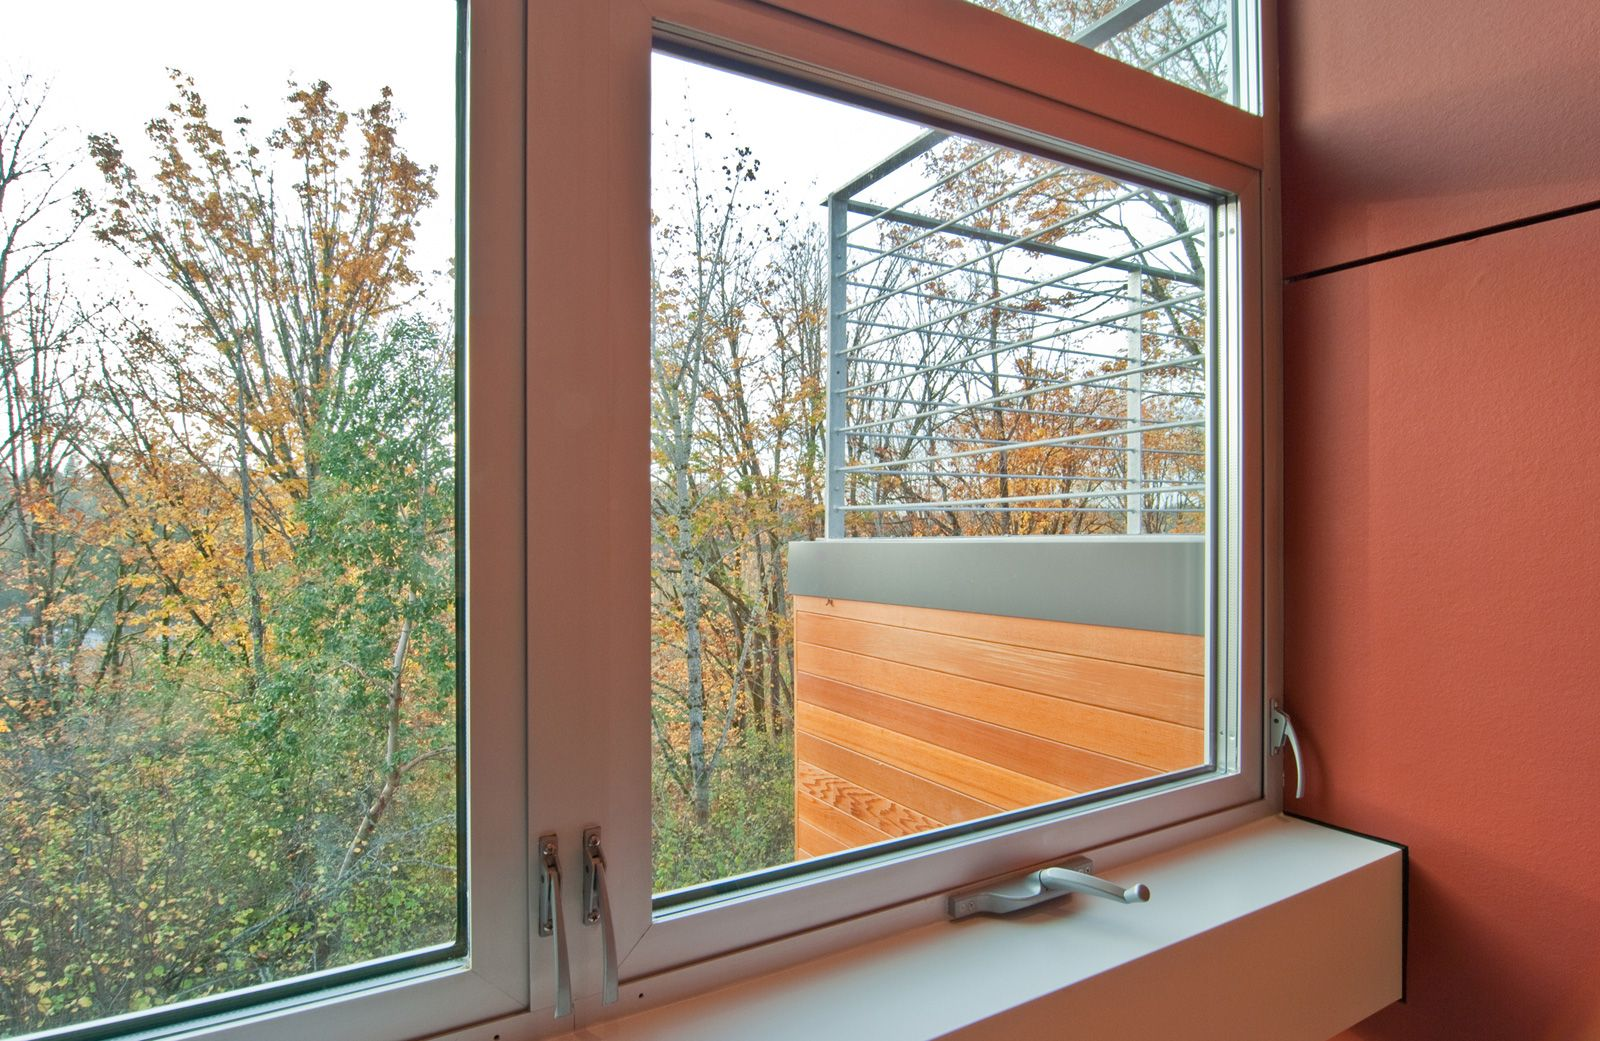 Top 10 Things To Know About Aluminum Windows Aluminium Windows